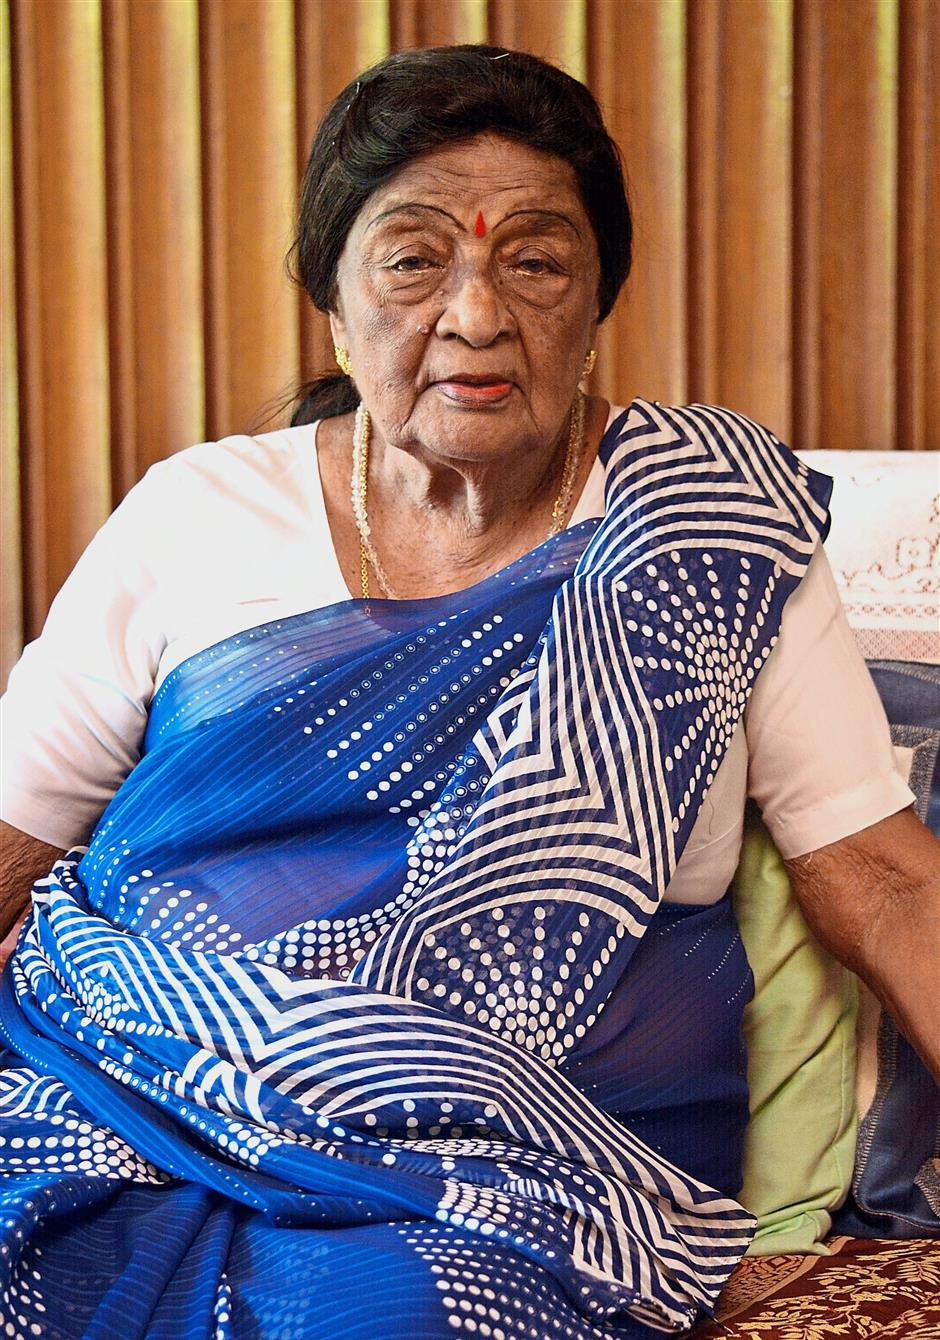 Devaki was 29 when Onn Jaafar picked her to contest in the Kuala Lumpur Municipal Council election in 1952.